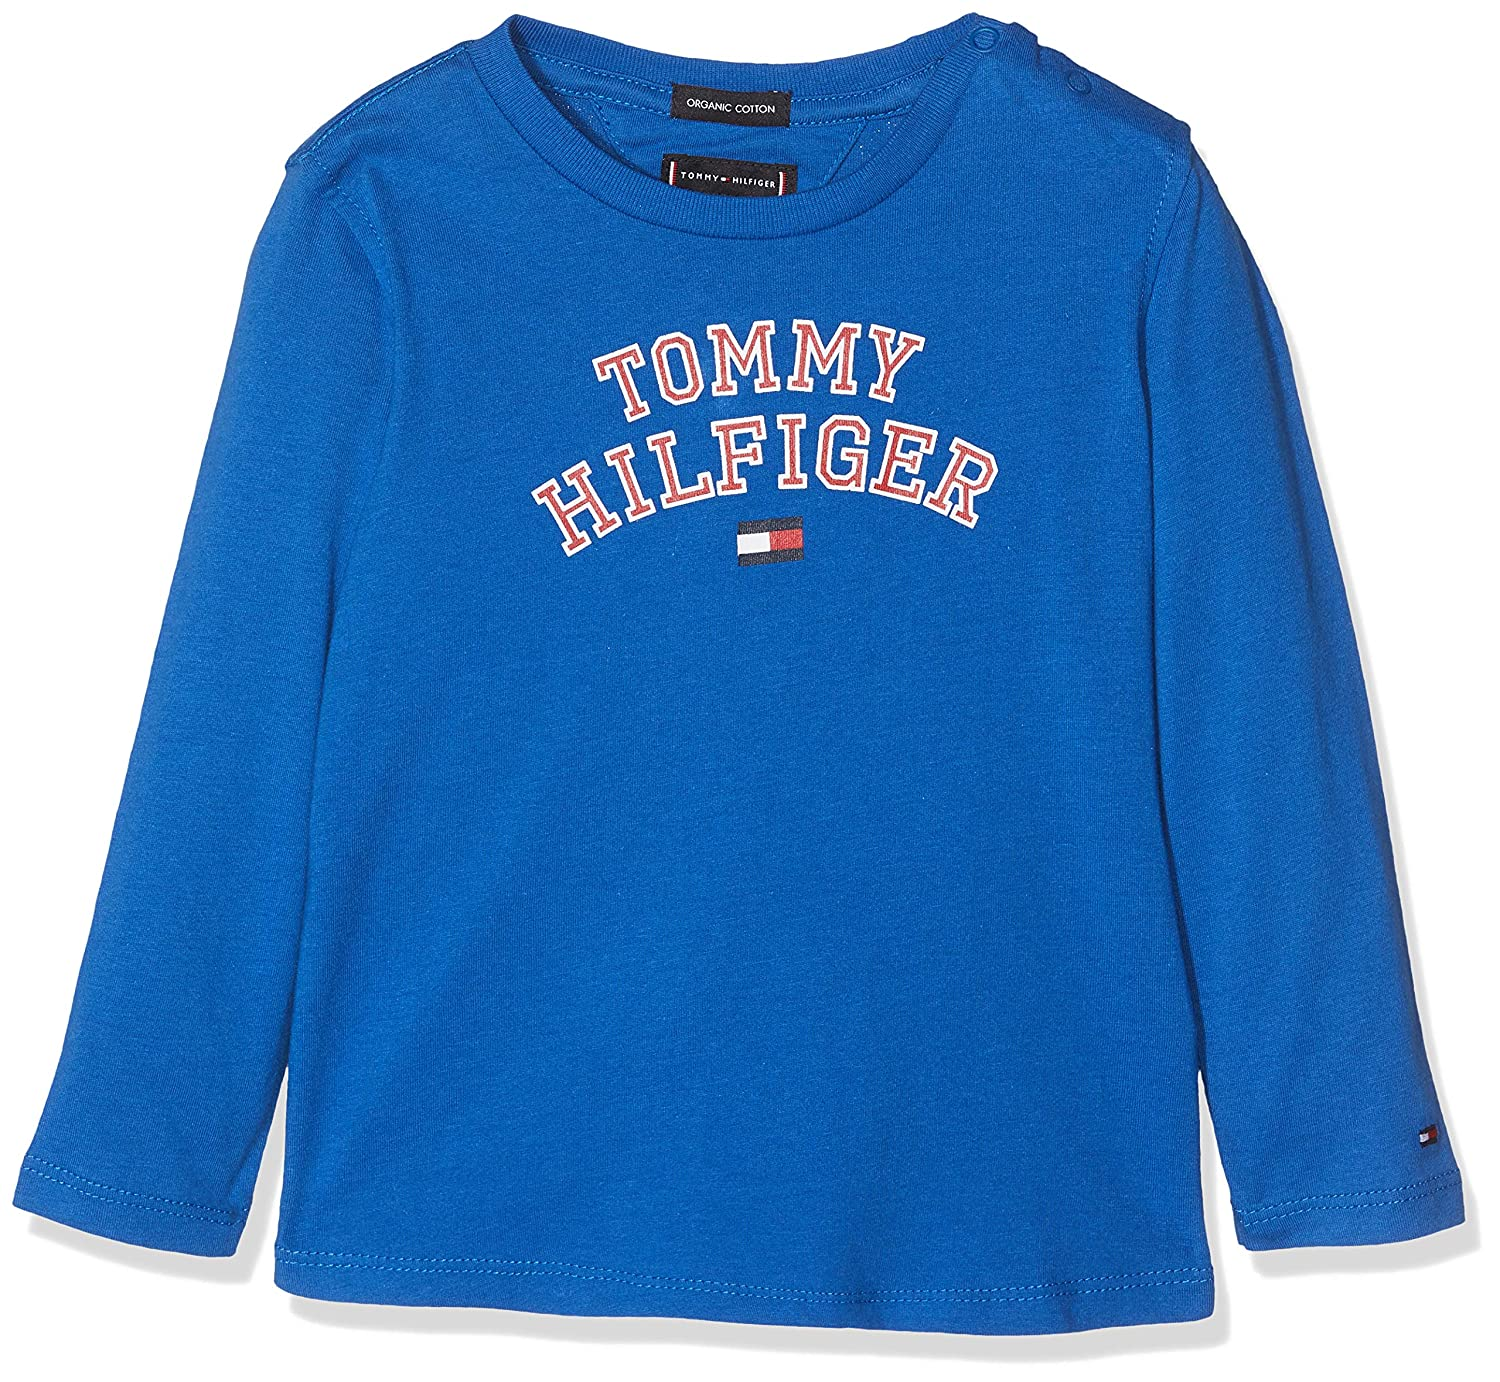 Tommy Hilfiger Essential Tee L/S, Maglia a Maniche Lunghe Bambino KB0KB04432